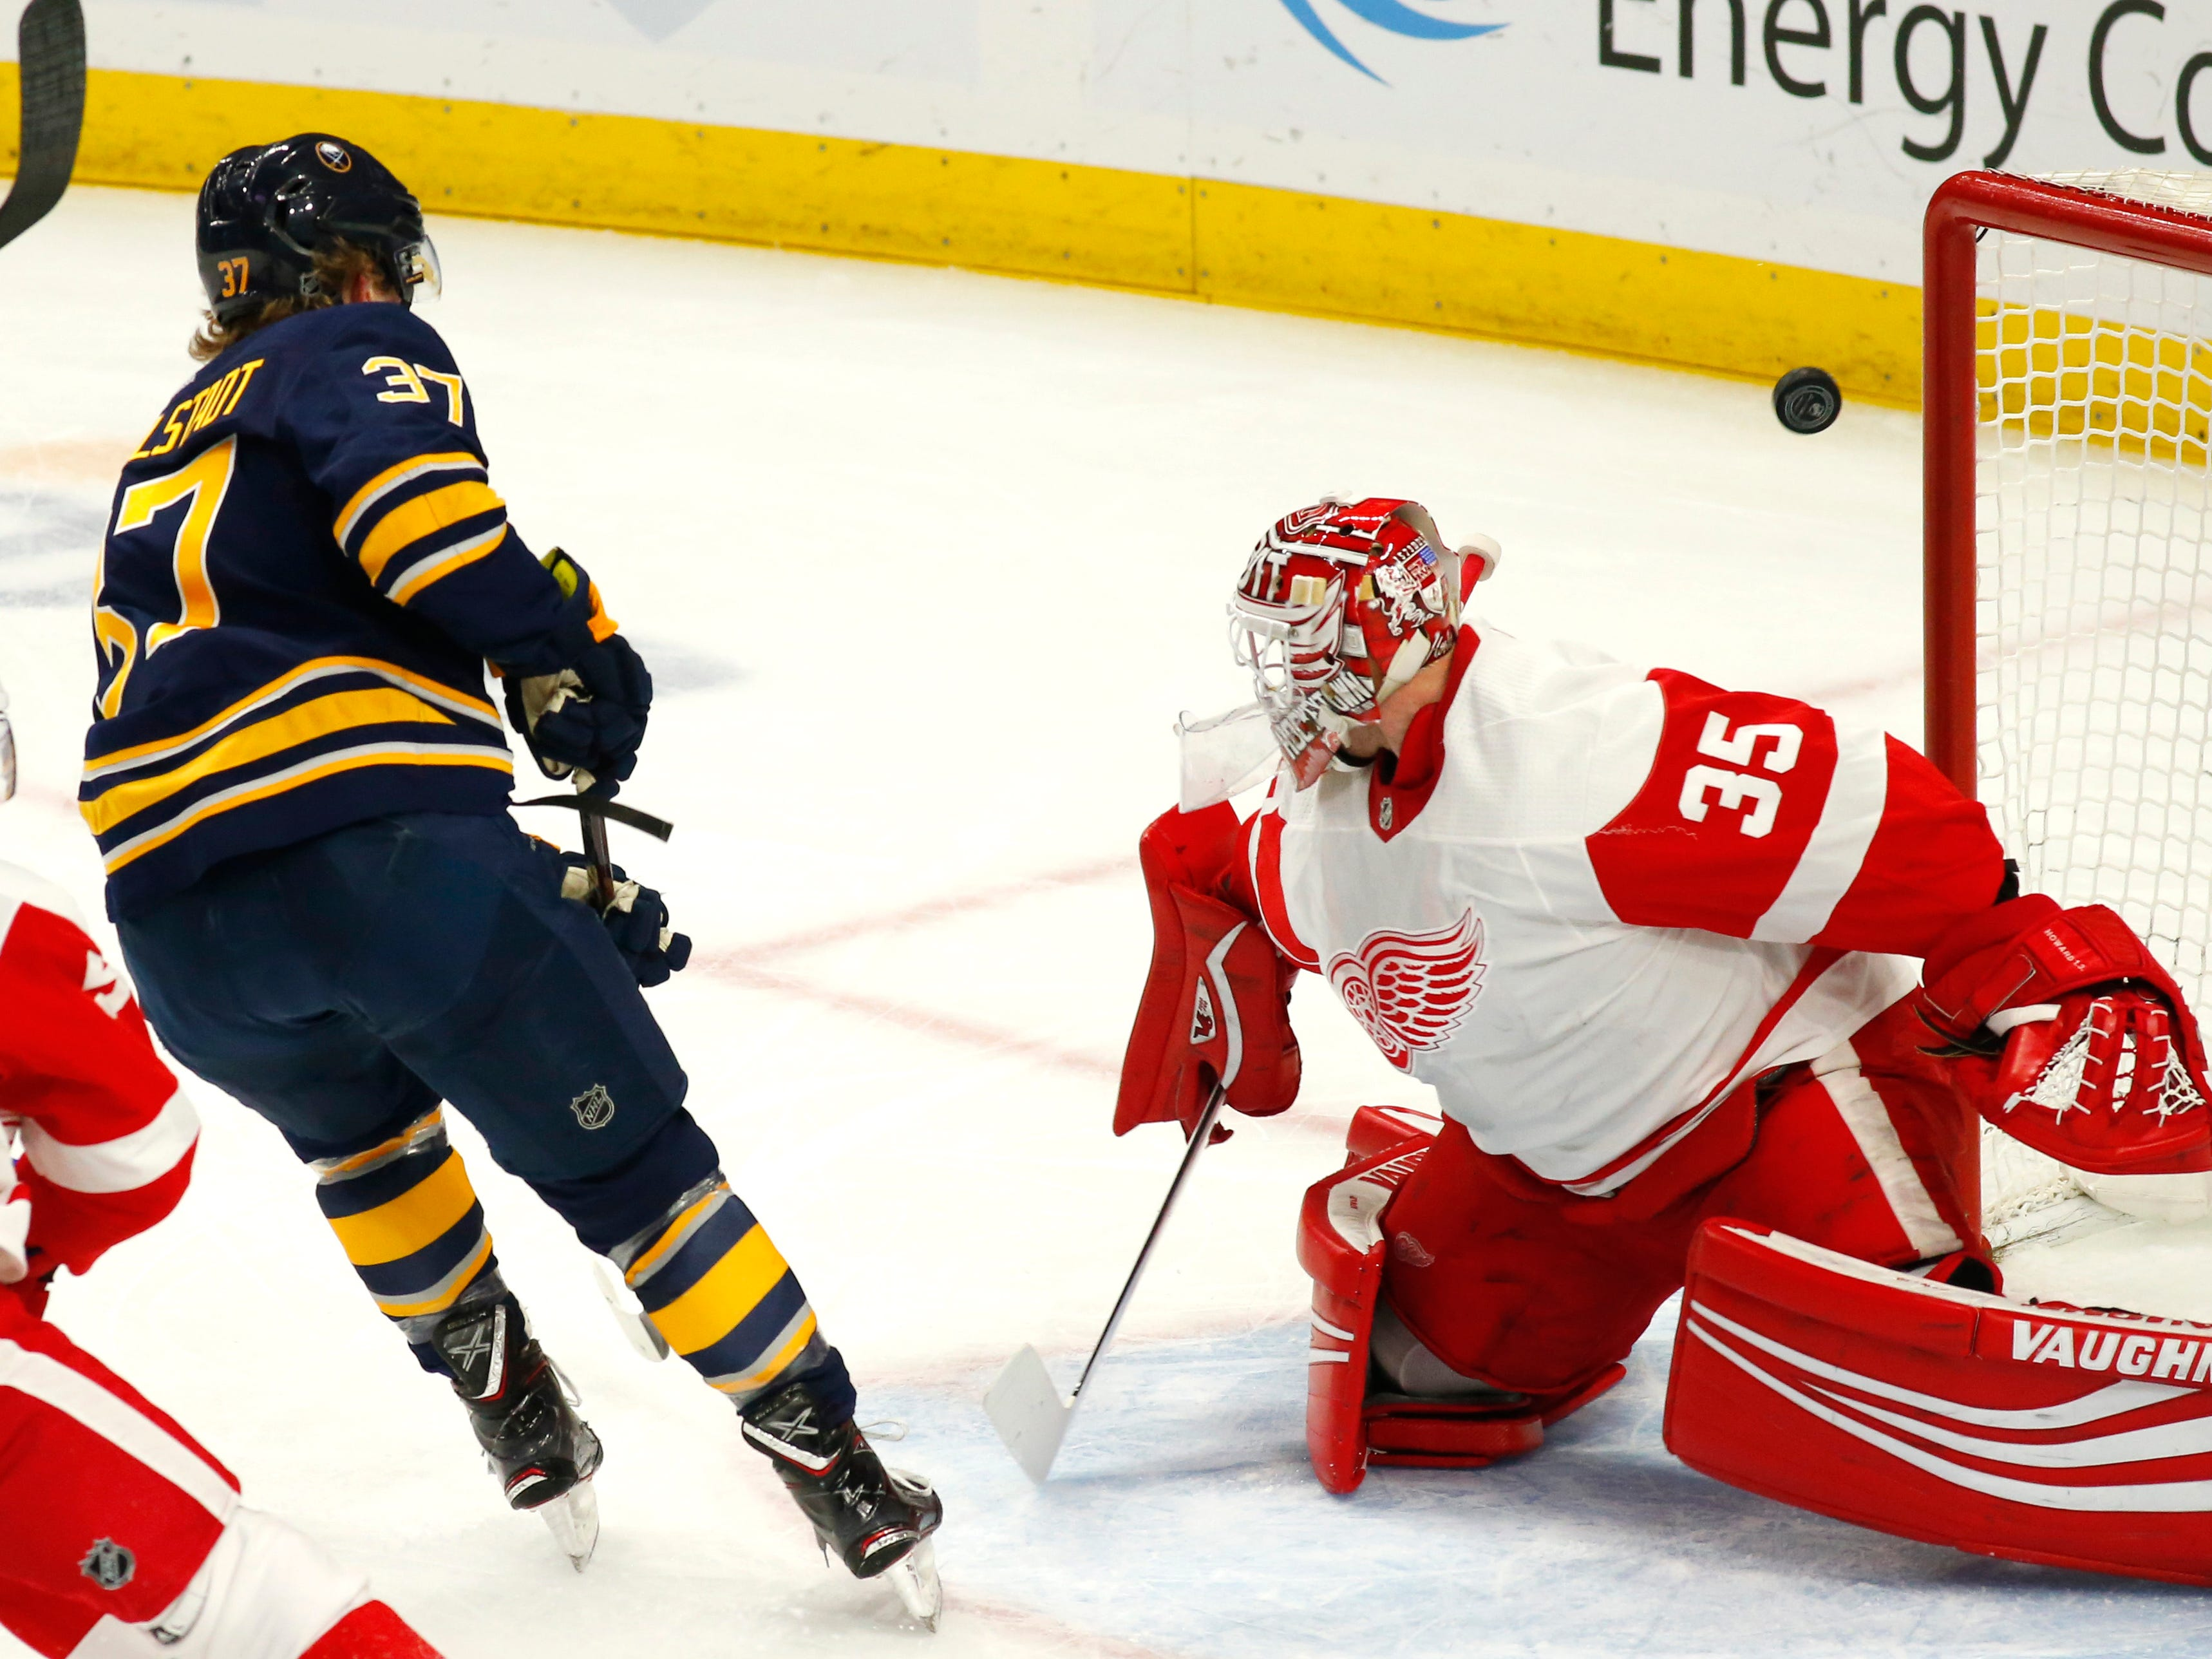 Sabres forward Casey Mittelstadt shoots the puck wide of Red Wings goalie Jimmy Howard during the first period on Saturday, Feb. 9, 2019, in Buffalo N.Y.